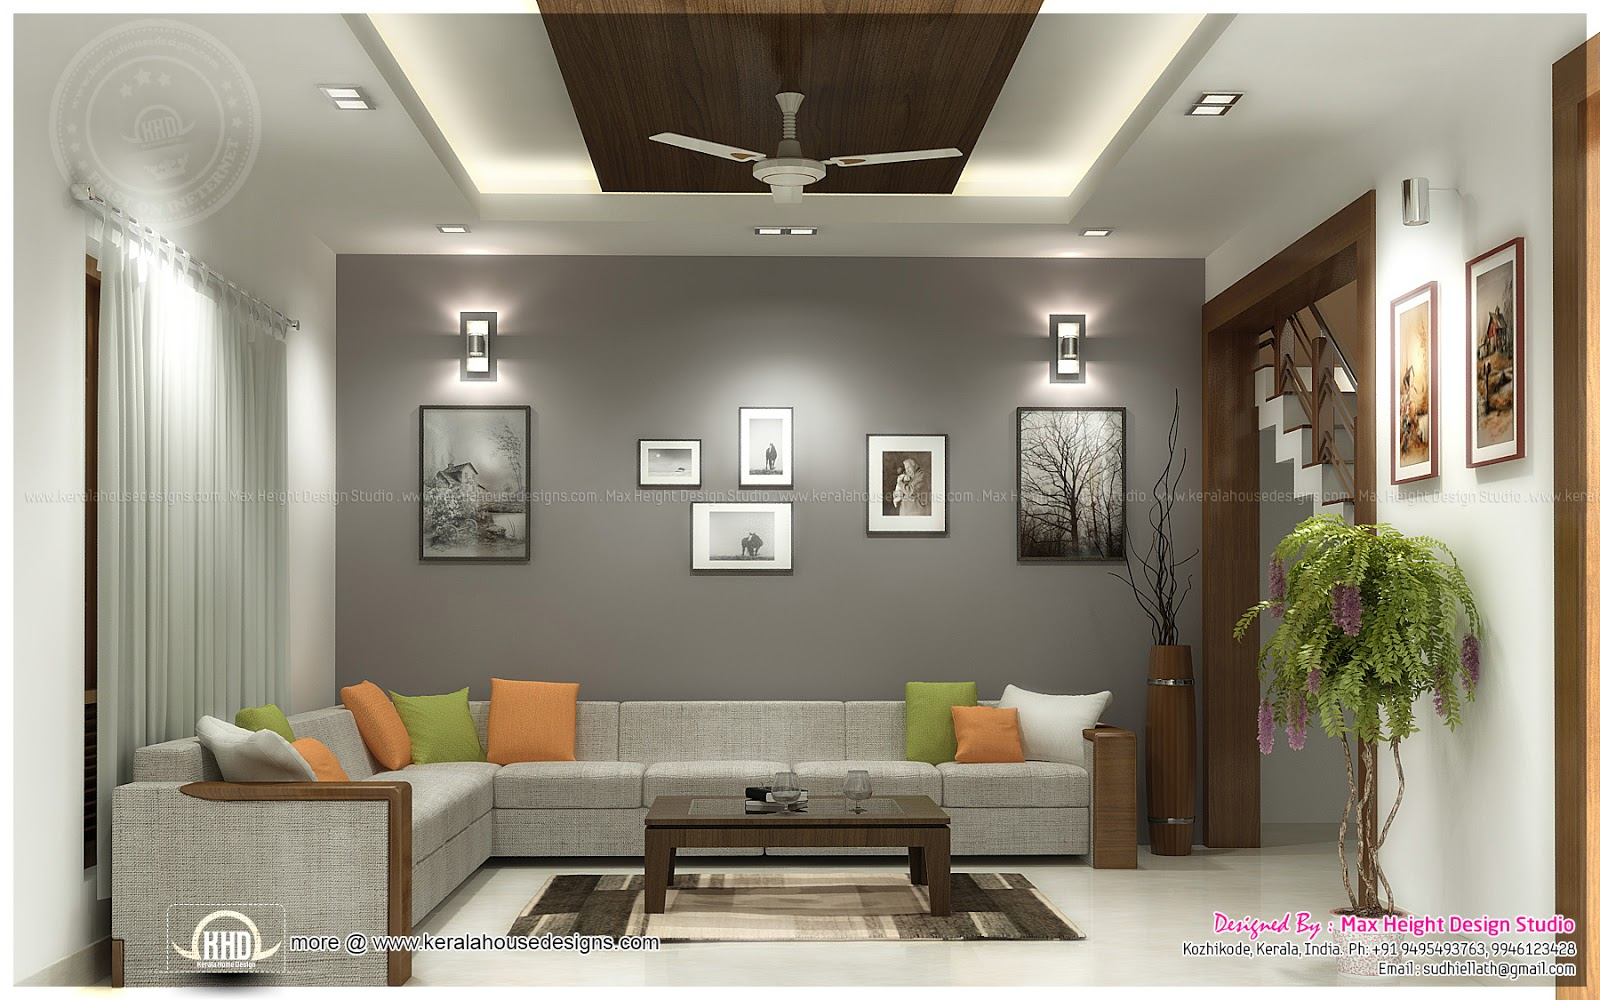 Beautiful interior ideas for home kerala home design and for Interior design ideas